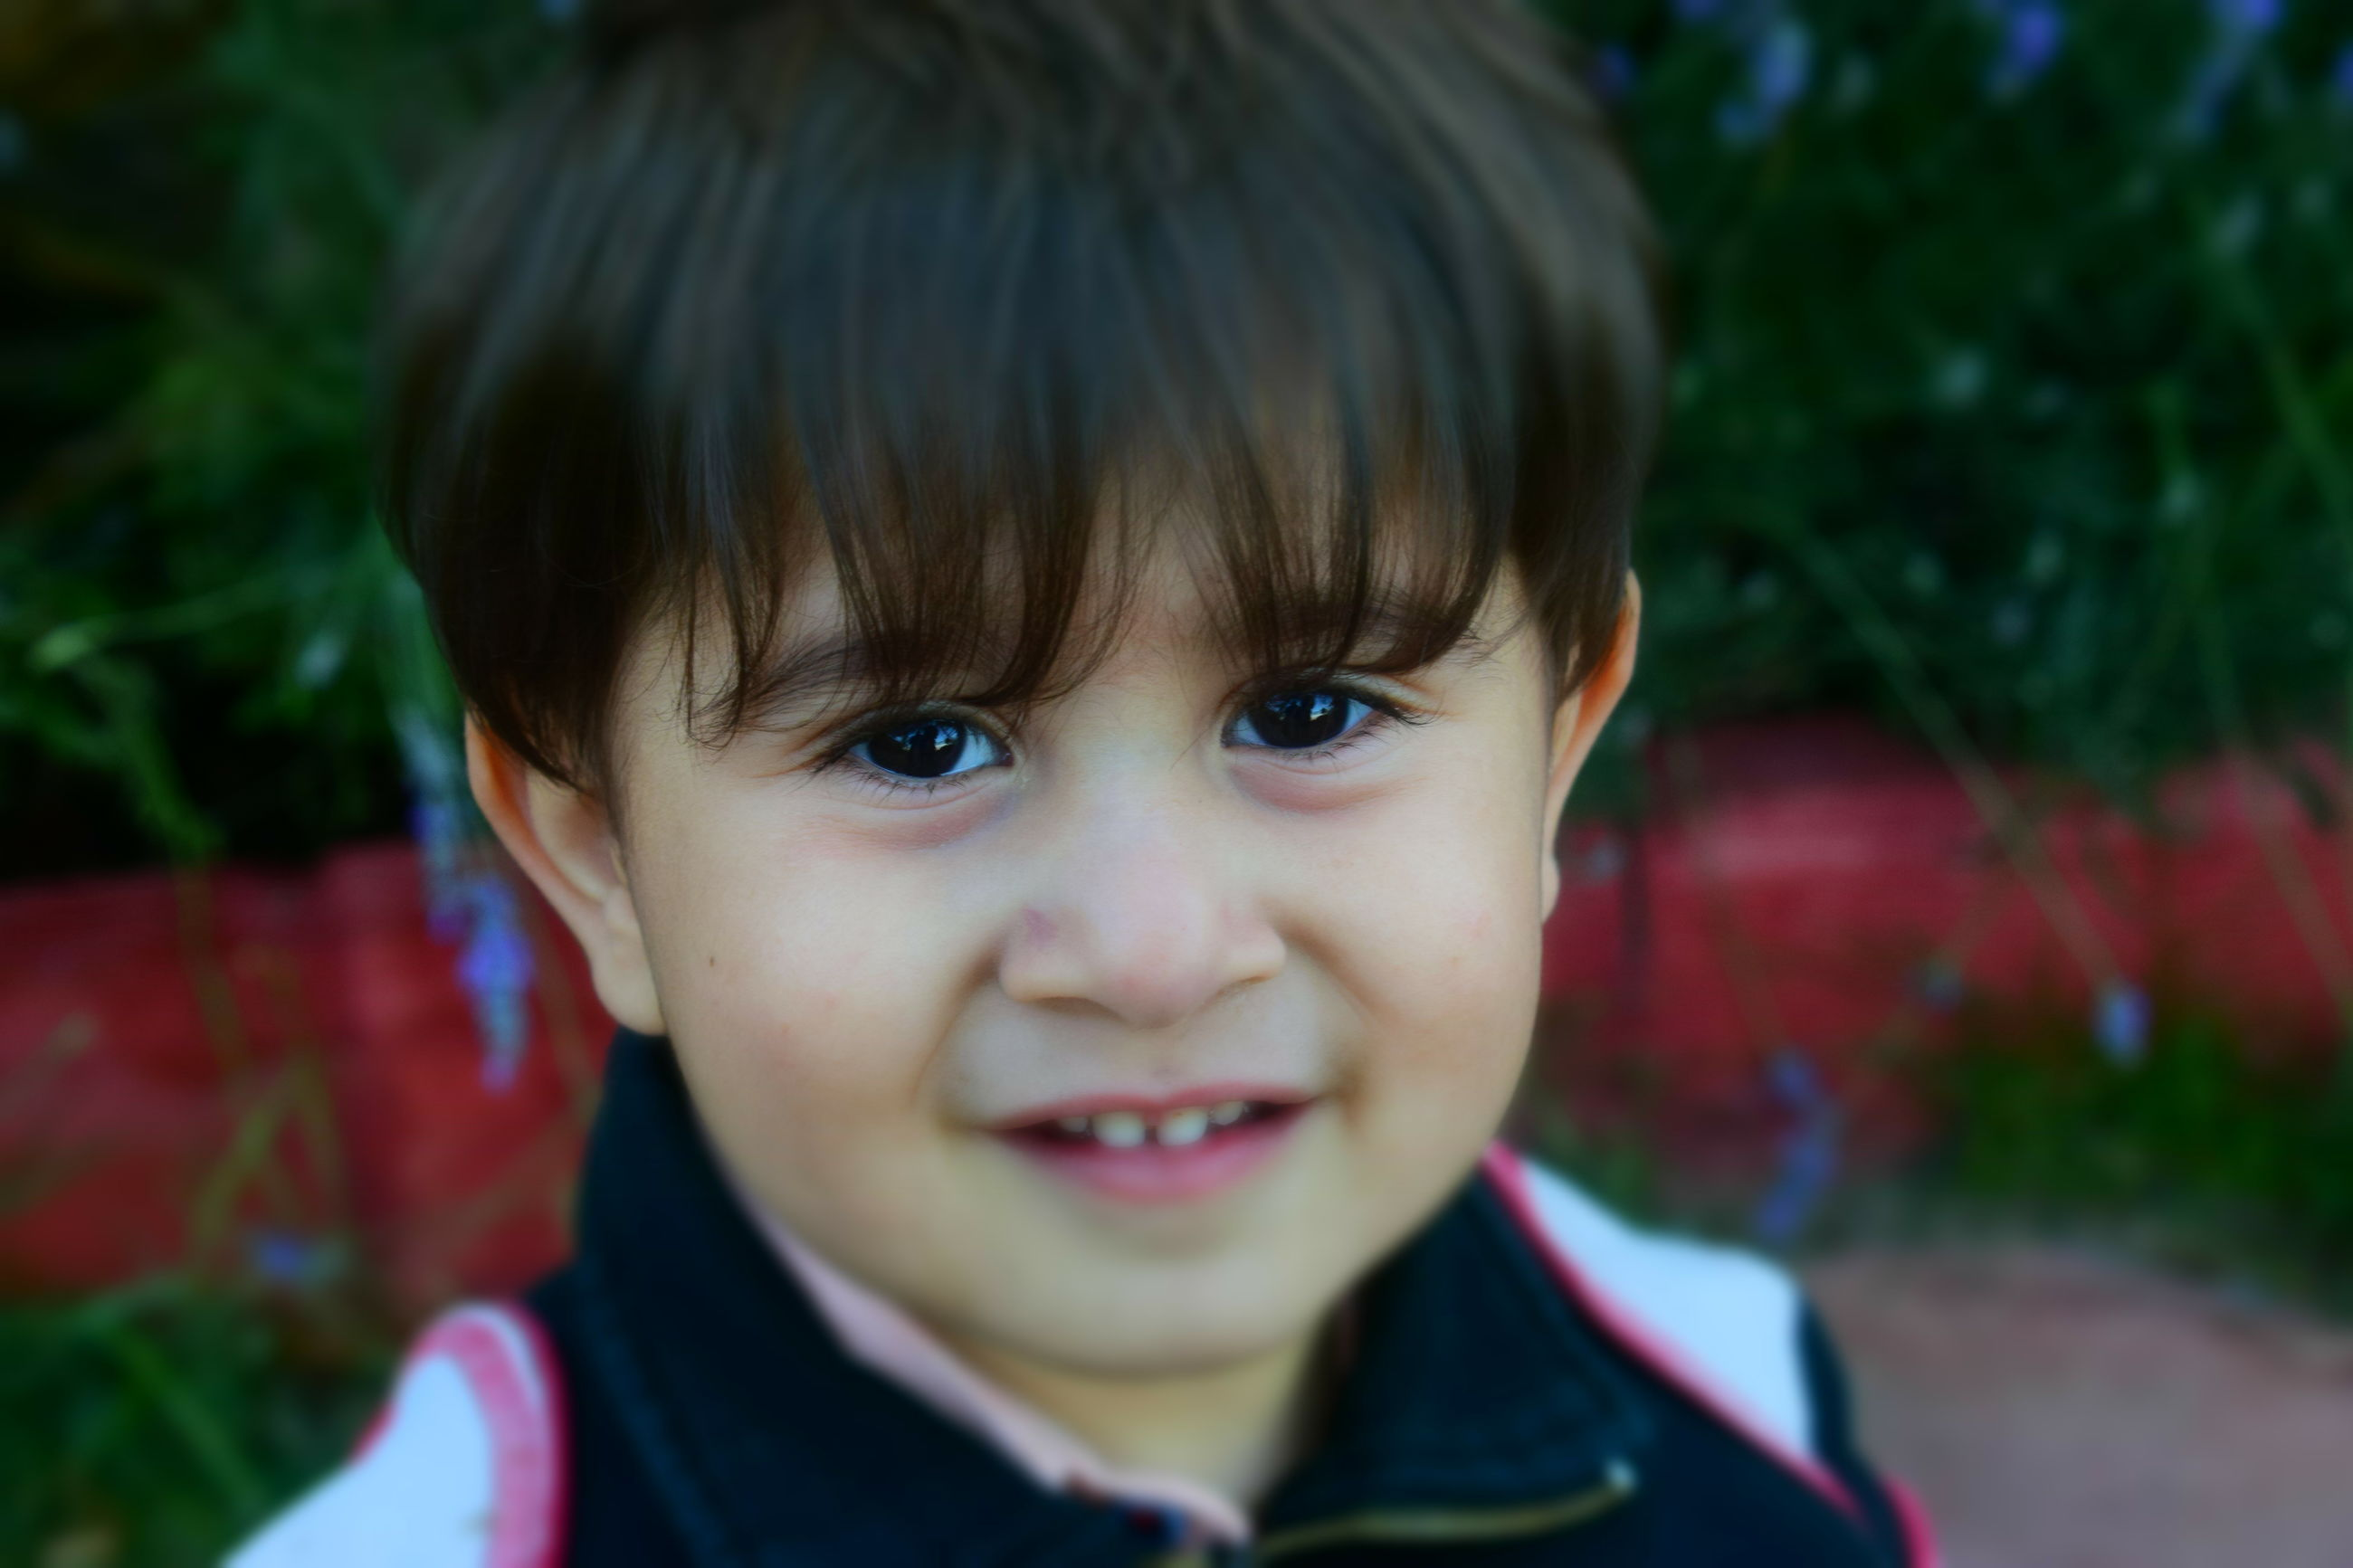 portrait, childhood, headshot, child, looking at camera, real people, one person, cute, innocence, focus on foreground, men, close-up, males, boys, front view, smiling, lifestyles, leisure activity, outdoors, human face, hairstyle